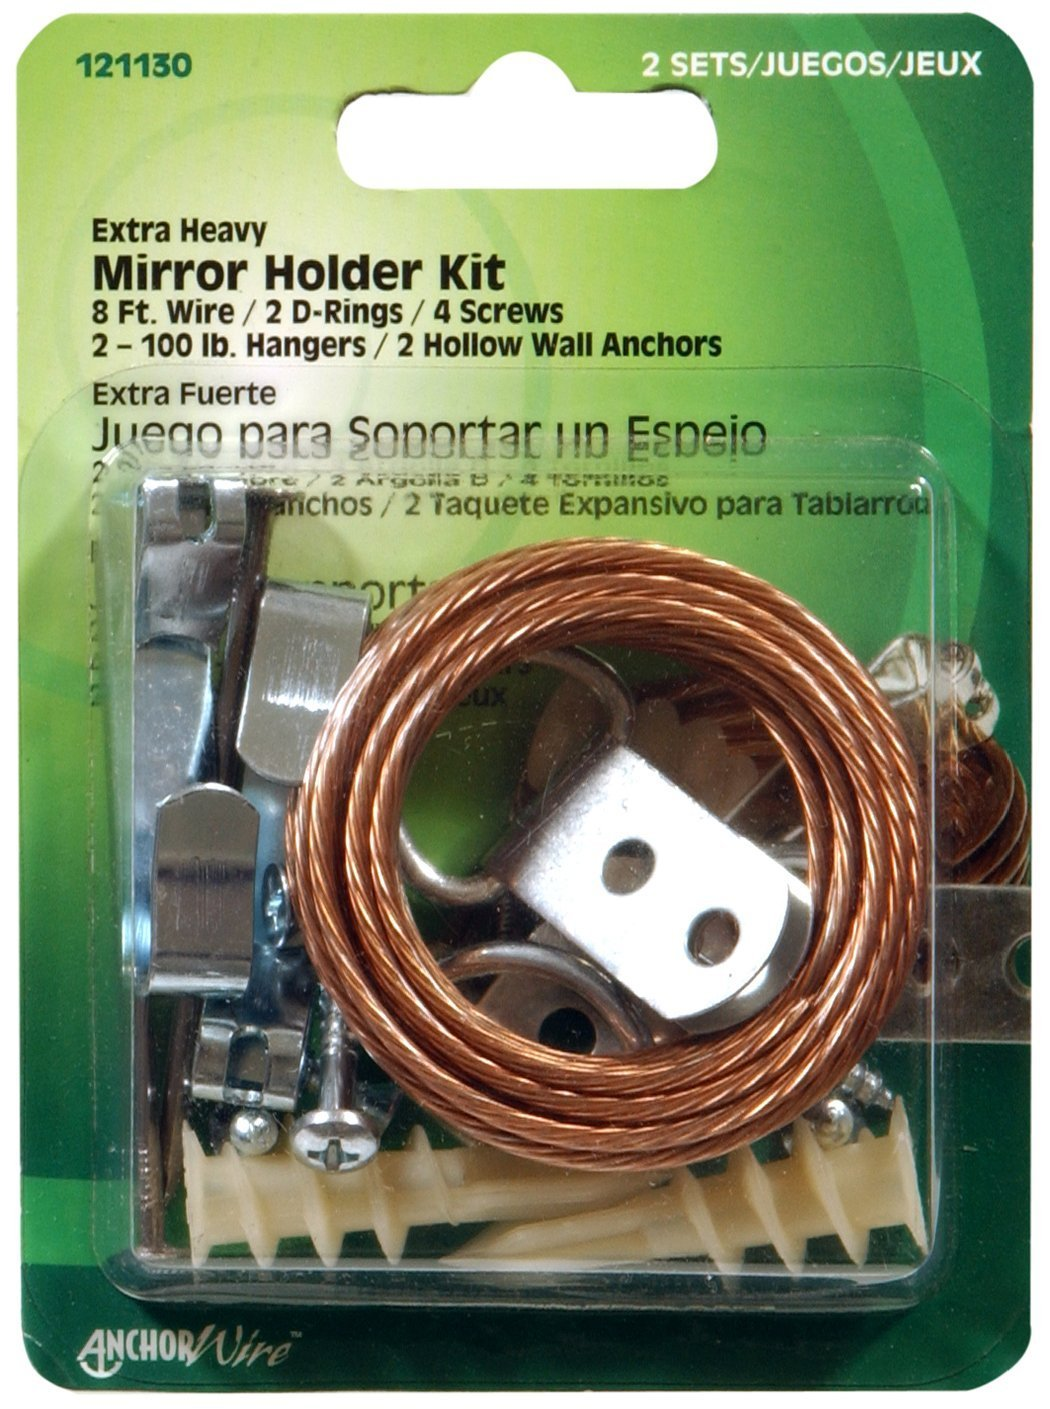 Hillman 121130 heavy duty mirror holder kit 100lbs 11 pieces hillman 121130 heavy duty mirror holder kit 100lbs 11 pieces picture hanging hardware amazon jeuxipadfo Image collections